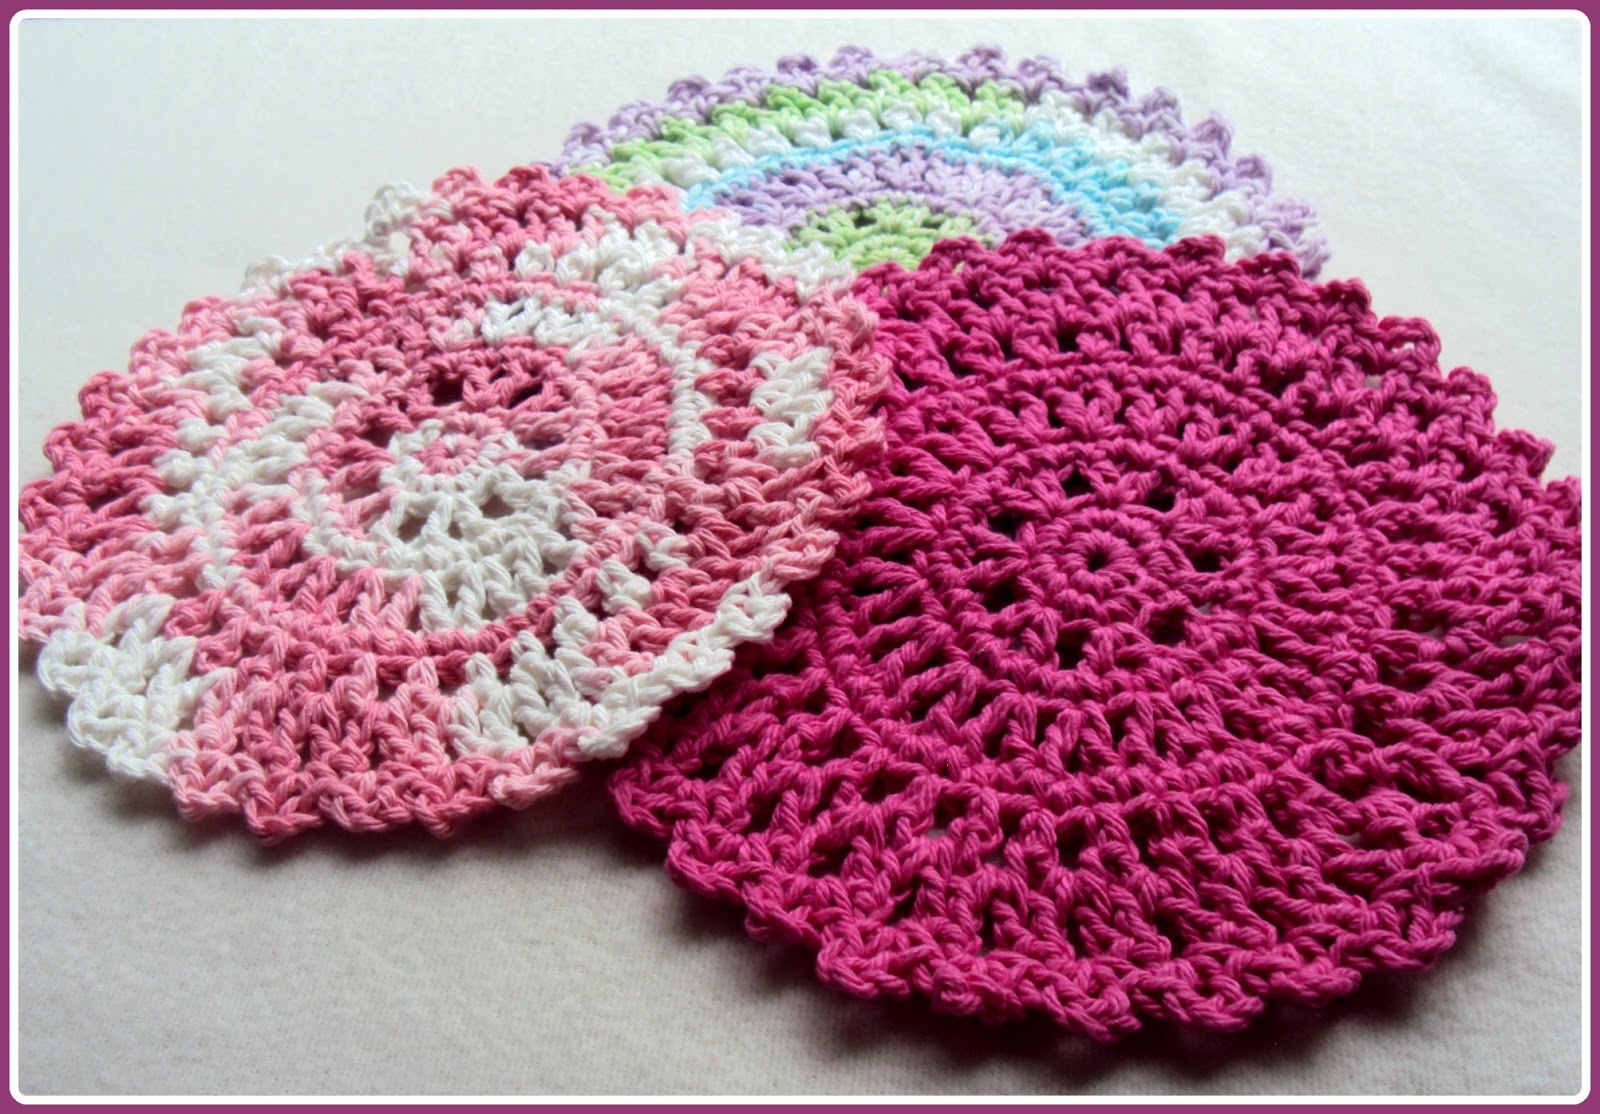 Crochet Patterns In Cotton : ... up quickly and beautifully when using both acrylic or cotton yarns